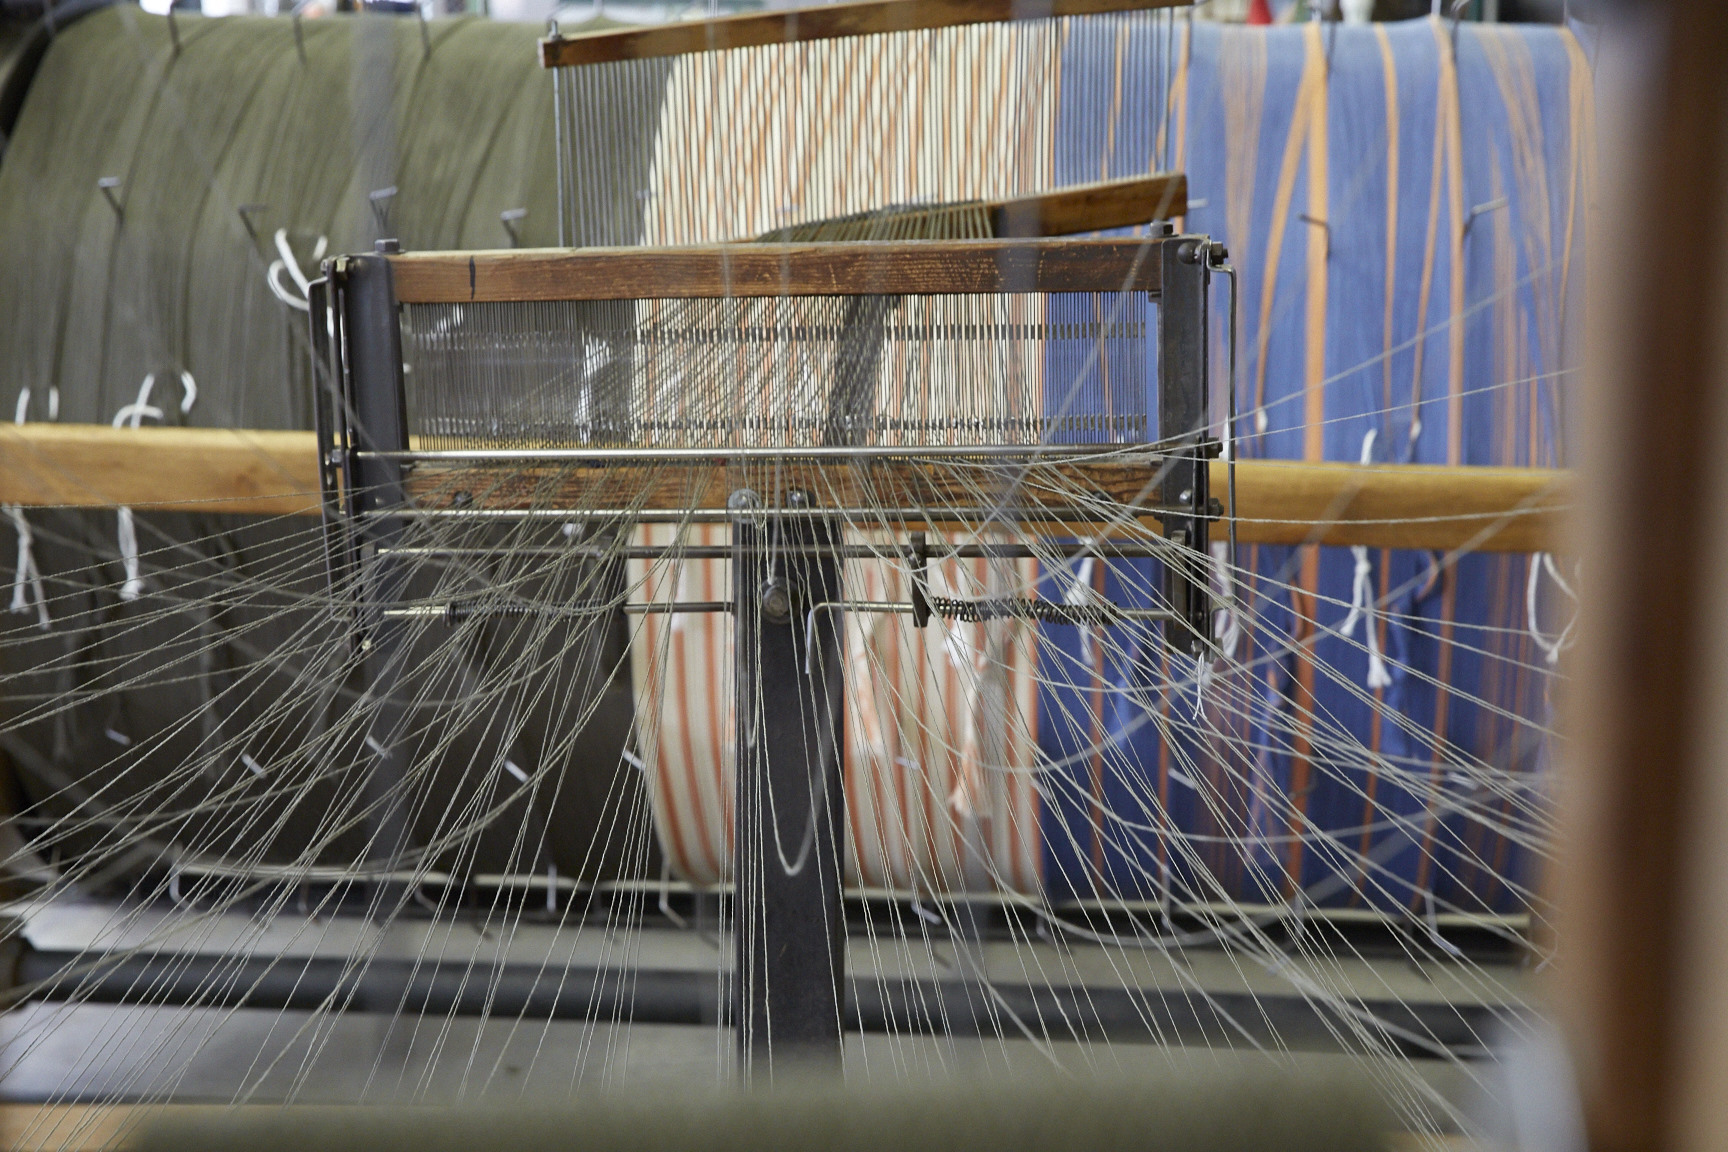 Photo By Jennifer Marx, 2016. 8/2 cotton yarn comes off the cones from a giant spool rack and is wound directly onto a an industrial sized warp drum,which then gets wound onto the back of the Somet loom at The Weaving Mill in Chicago, IL.